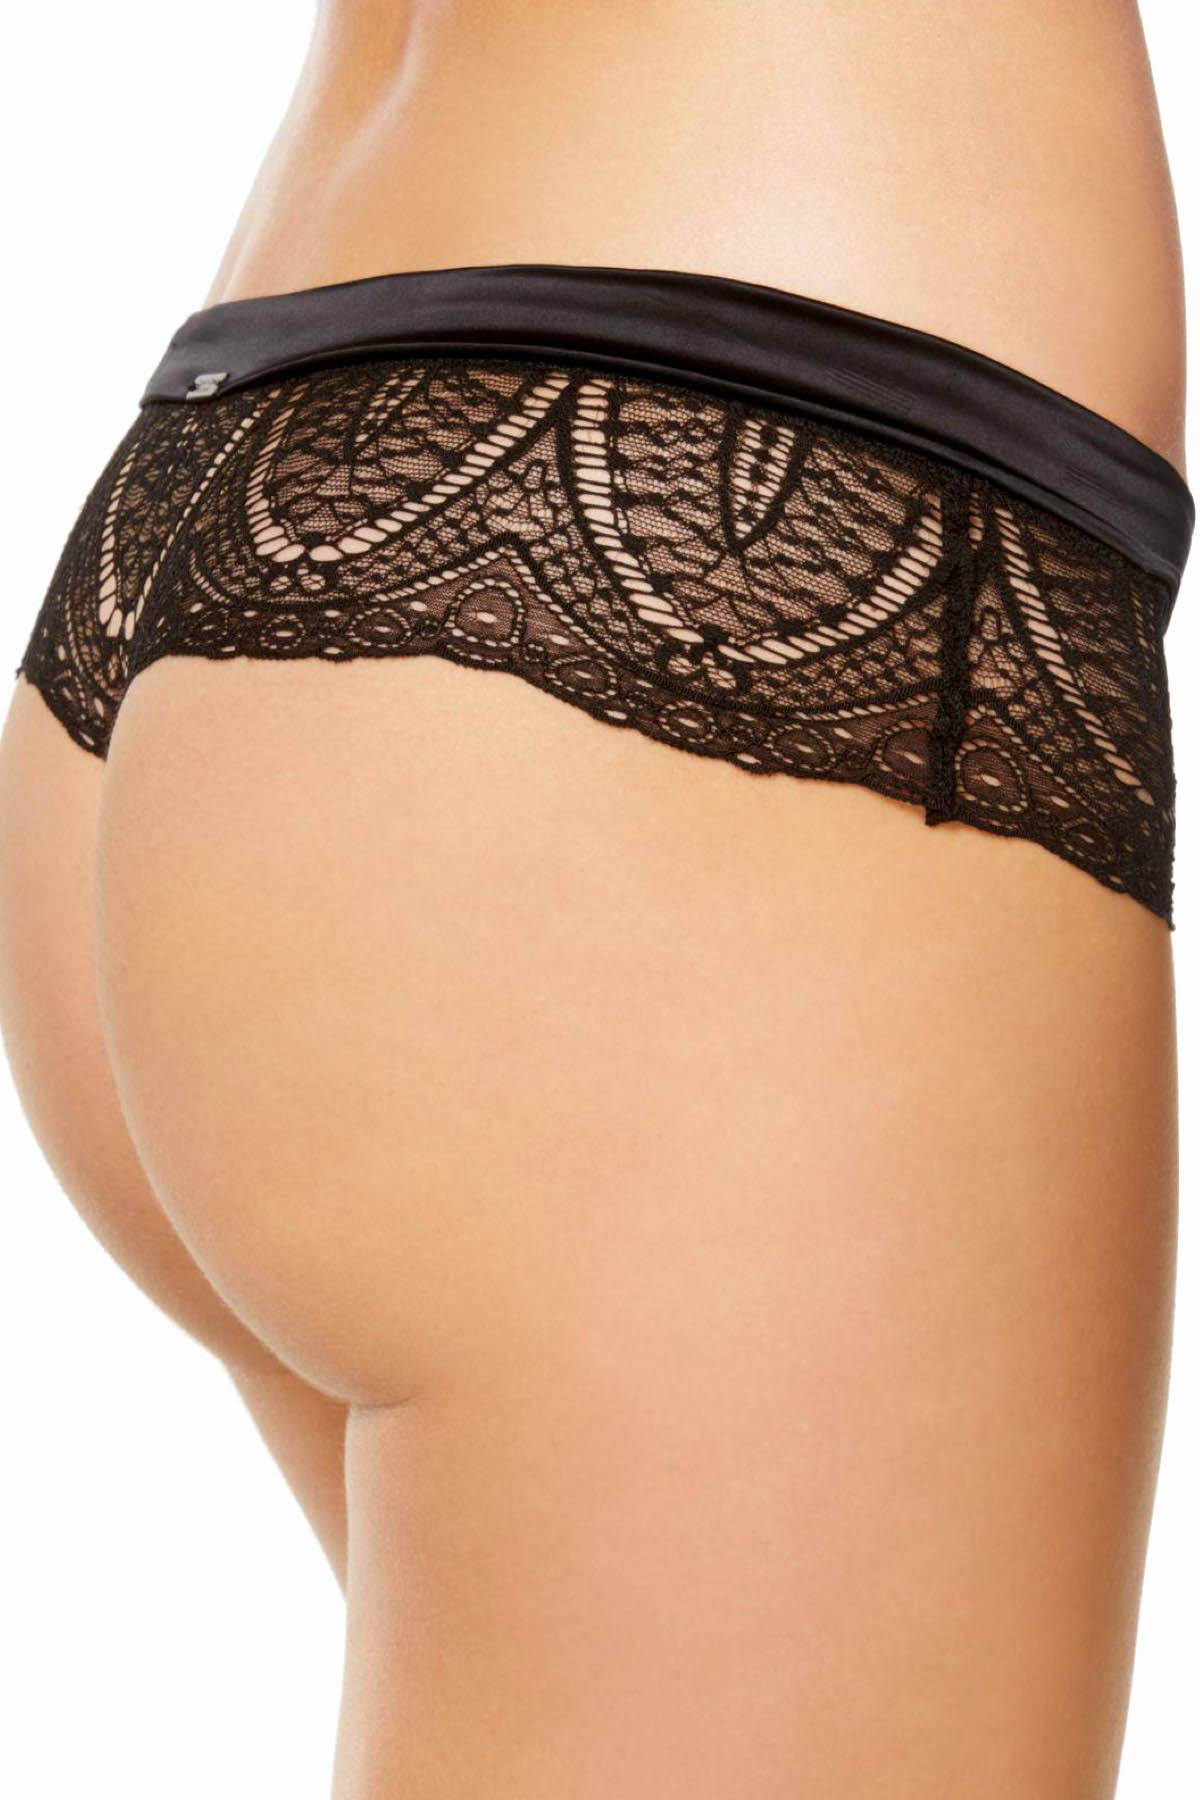 d4c1a71d4f1f CK Black by Calvin Klein Black Audacious Sheer-Lace Thong | CheapUndies